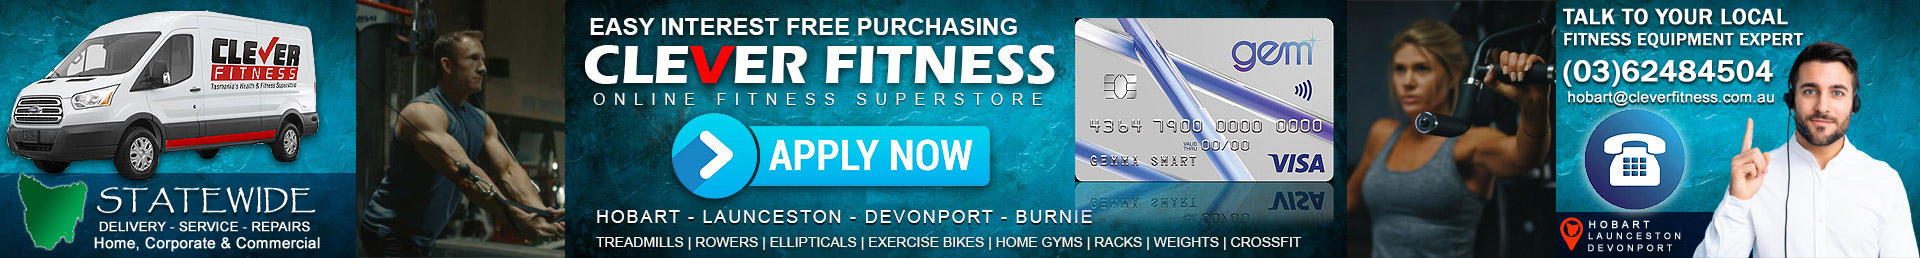 Gym Equipment Interest Free Hobart